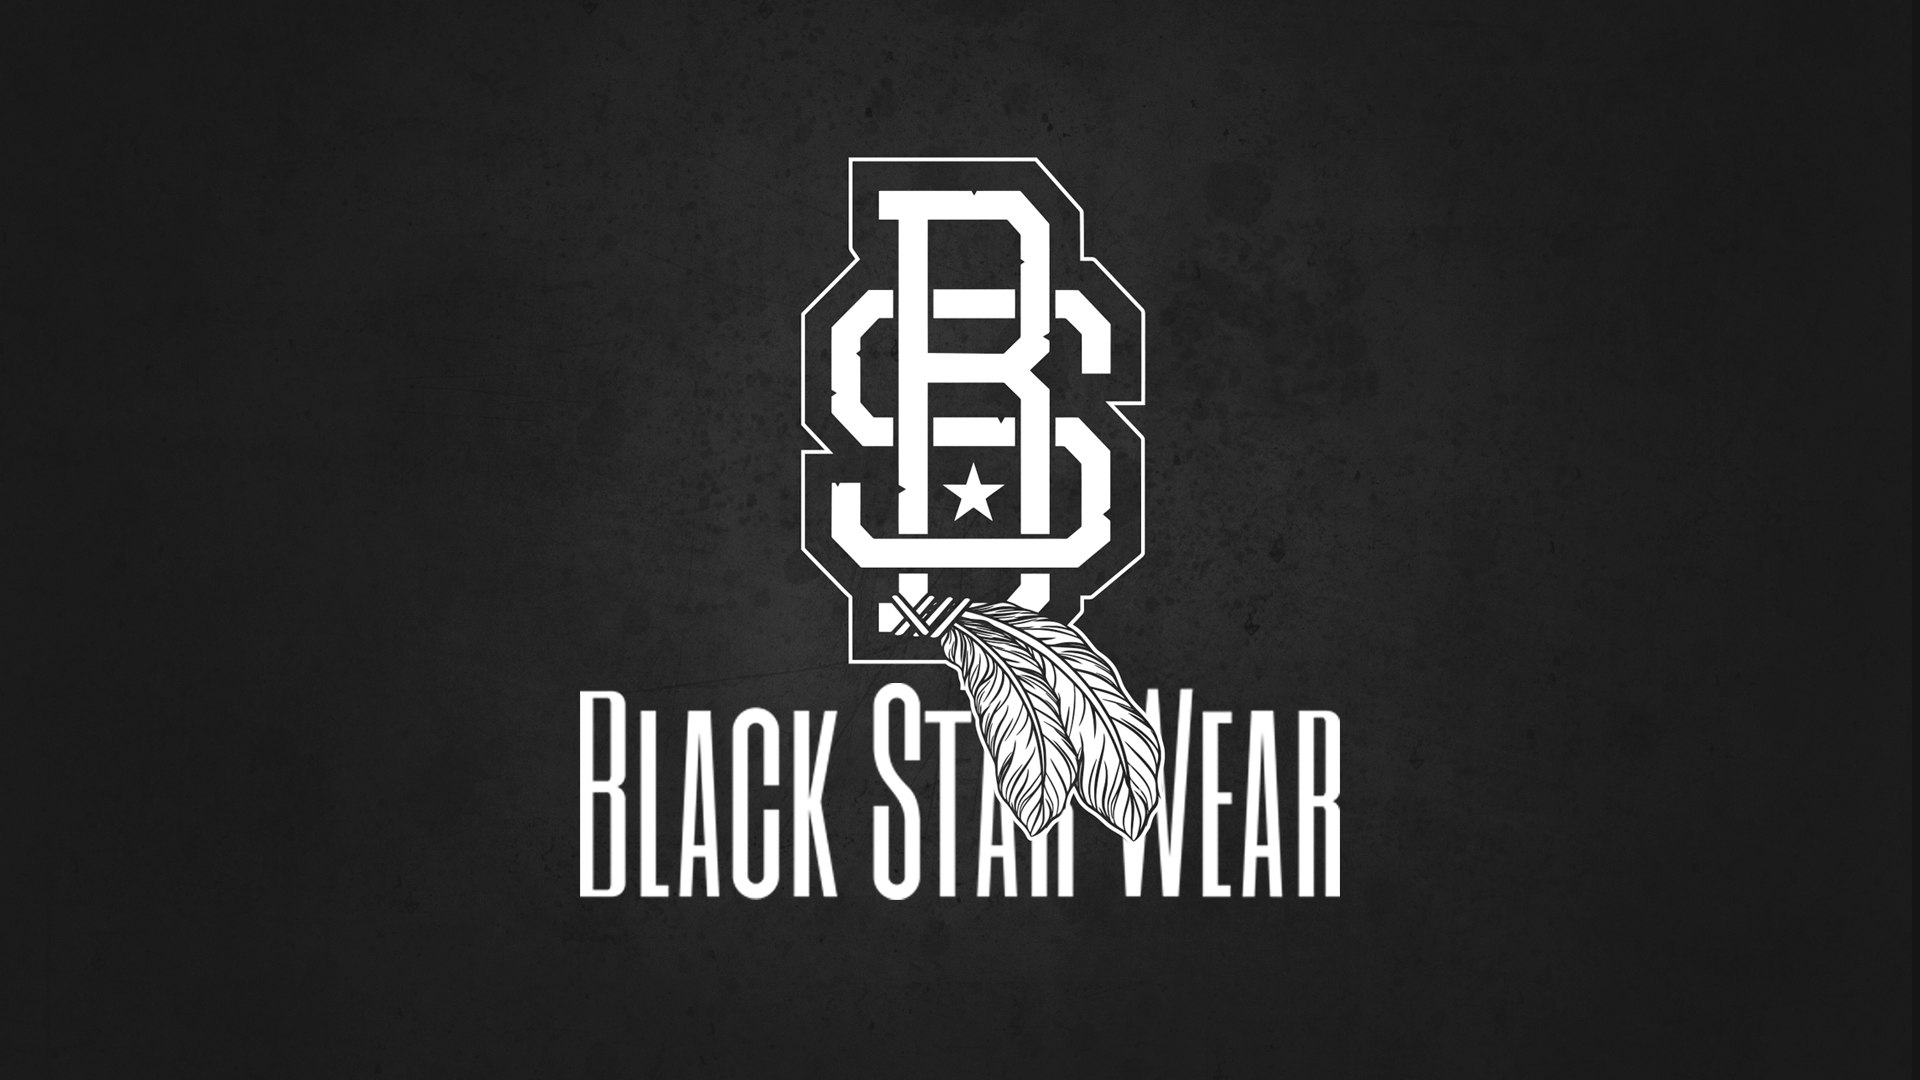 HD Wallpaper Of Black Star Wear